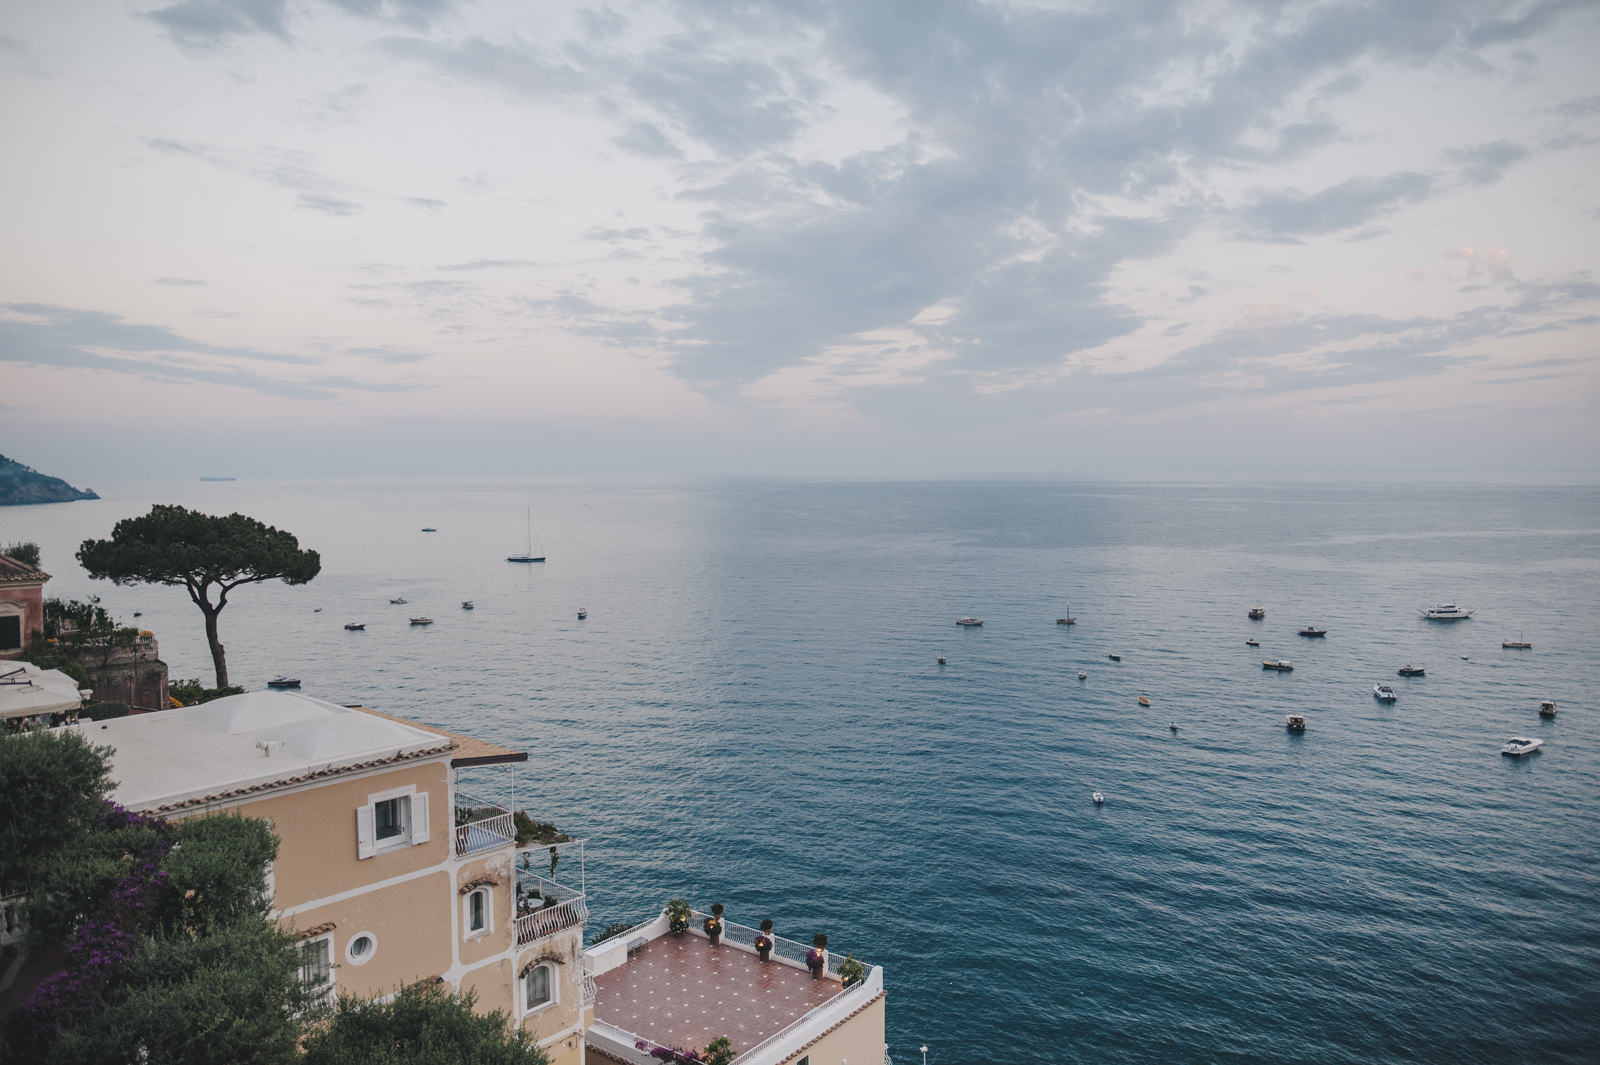 a view of the hotel Maricnanto in Positano